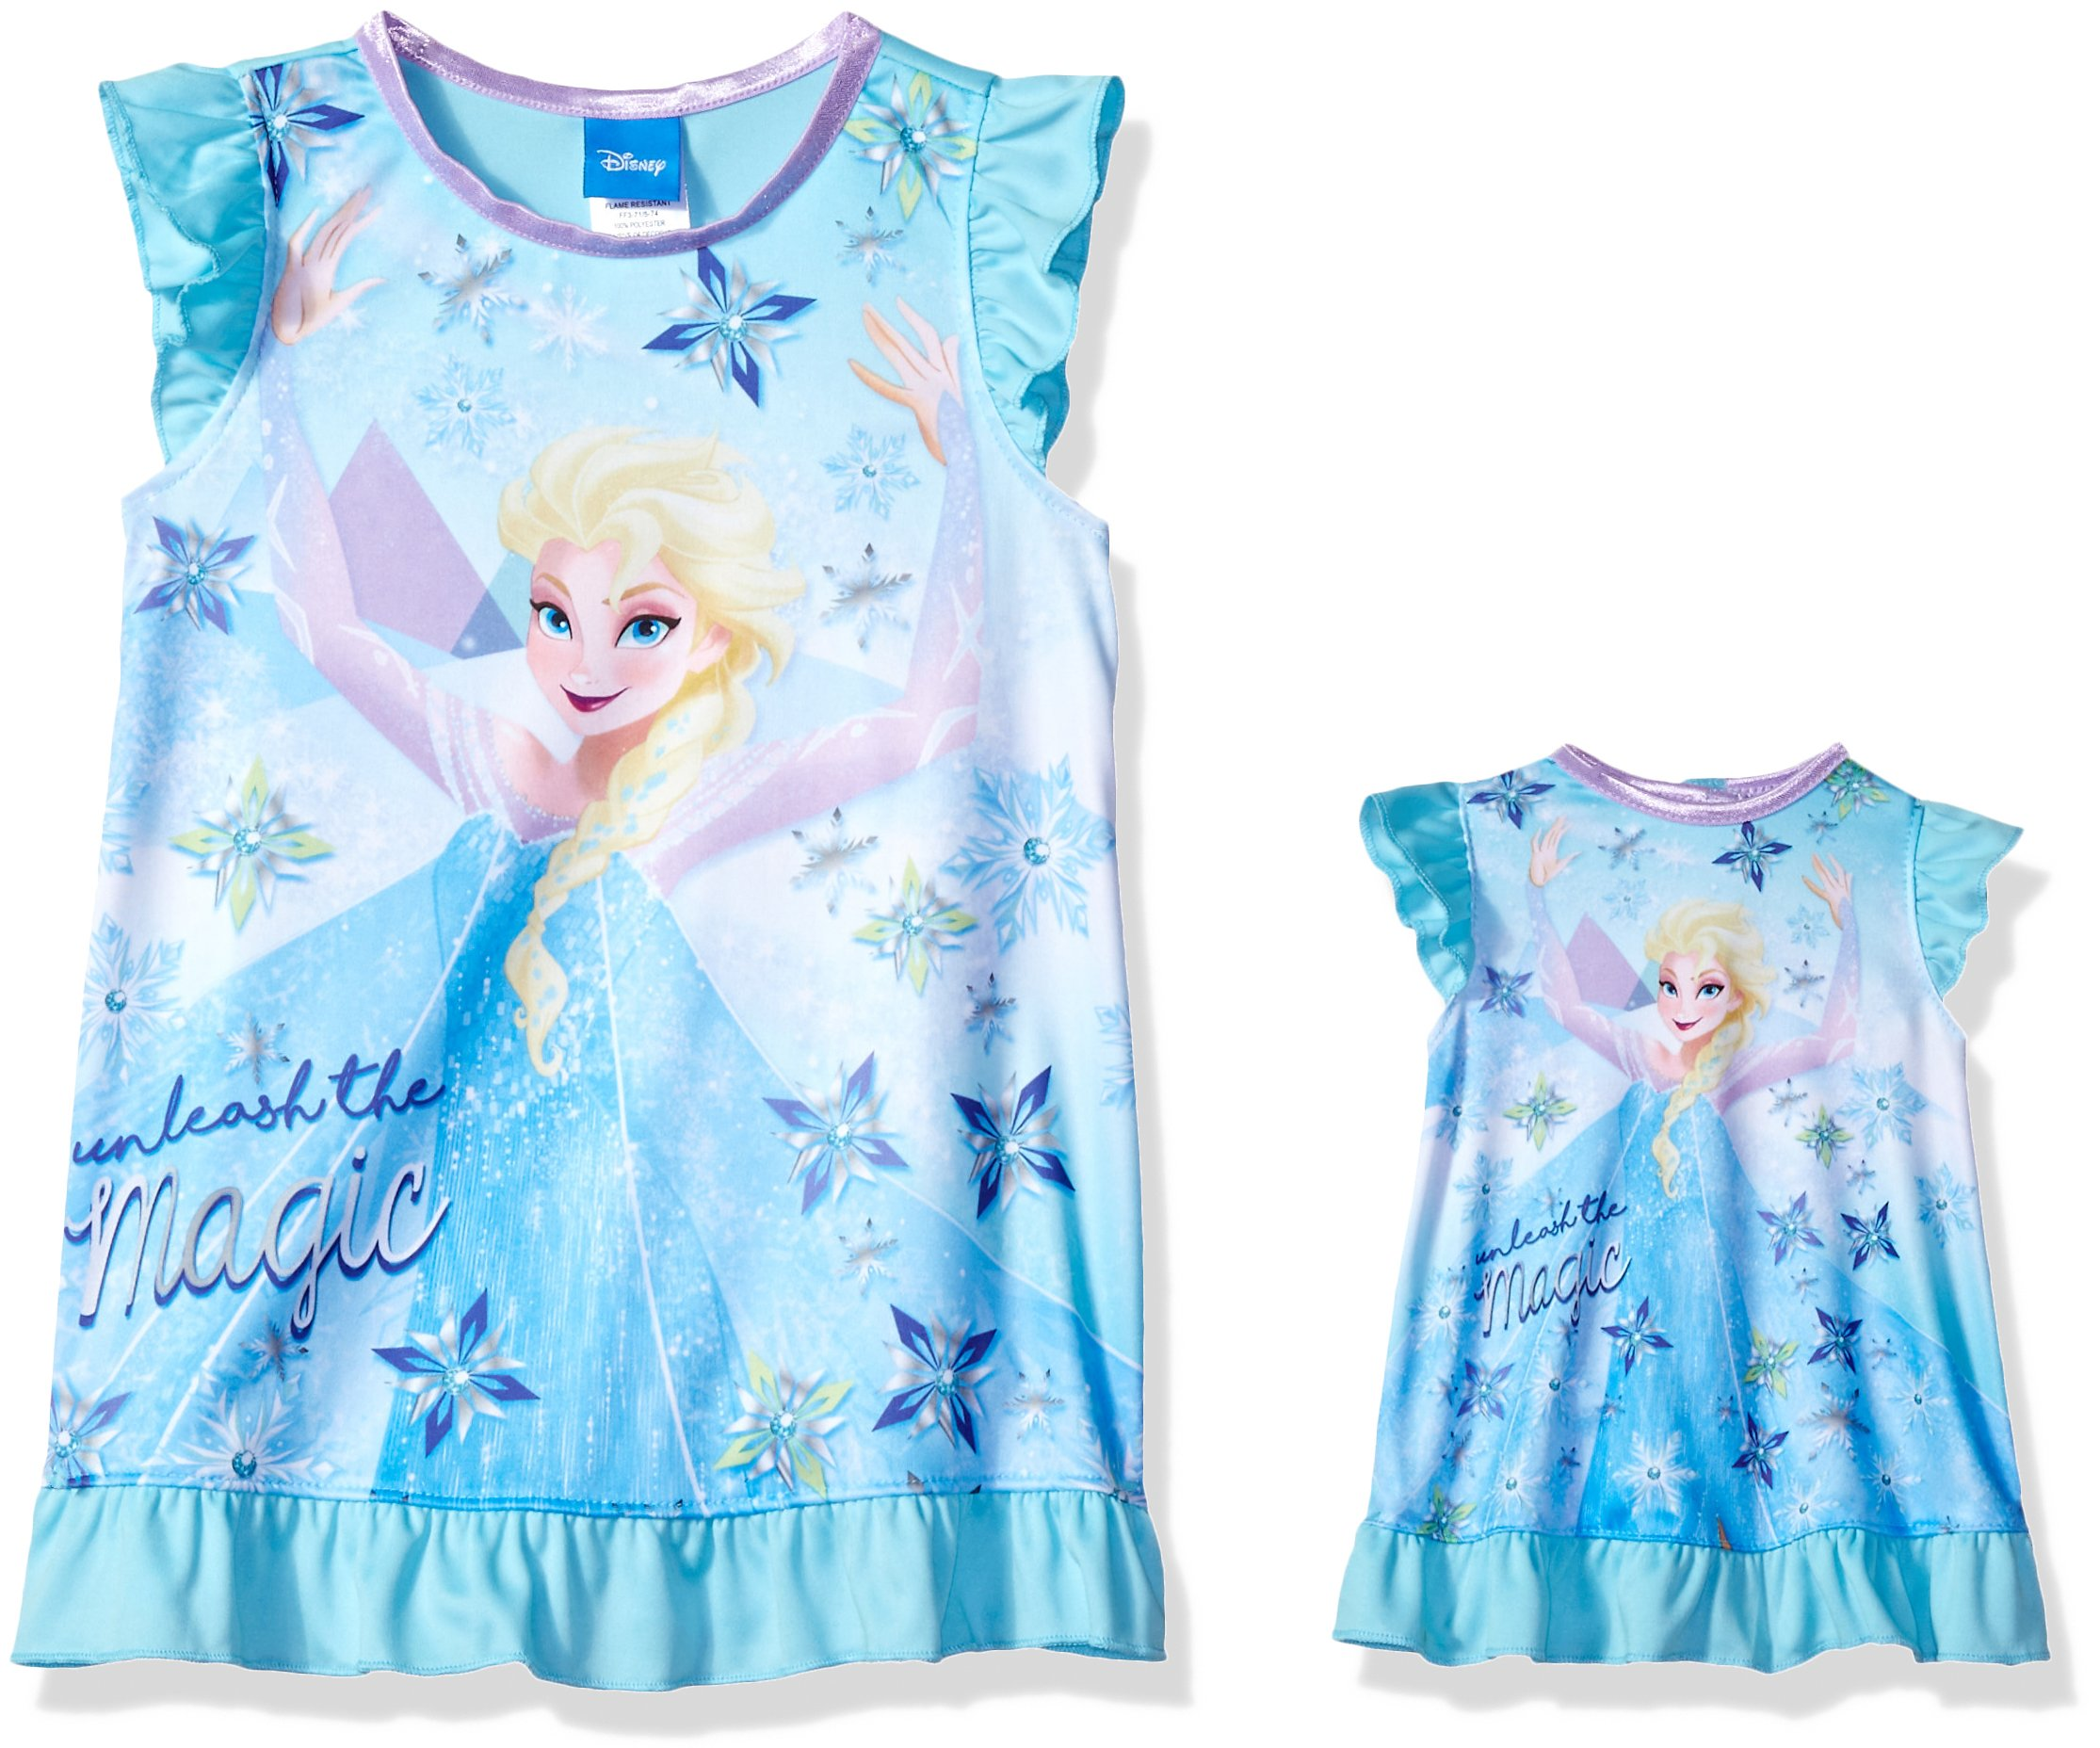 Disney Girls\' Frozen Nightgown - 21FZ717GD < Nightgowns < Clothing ...